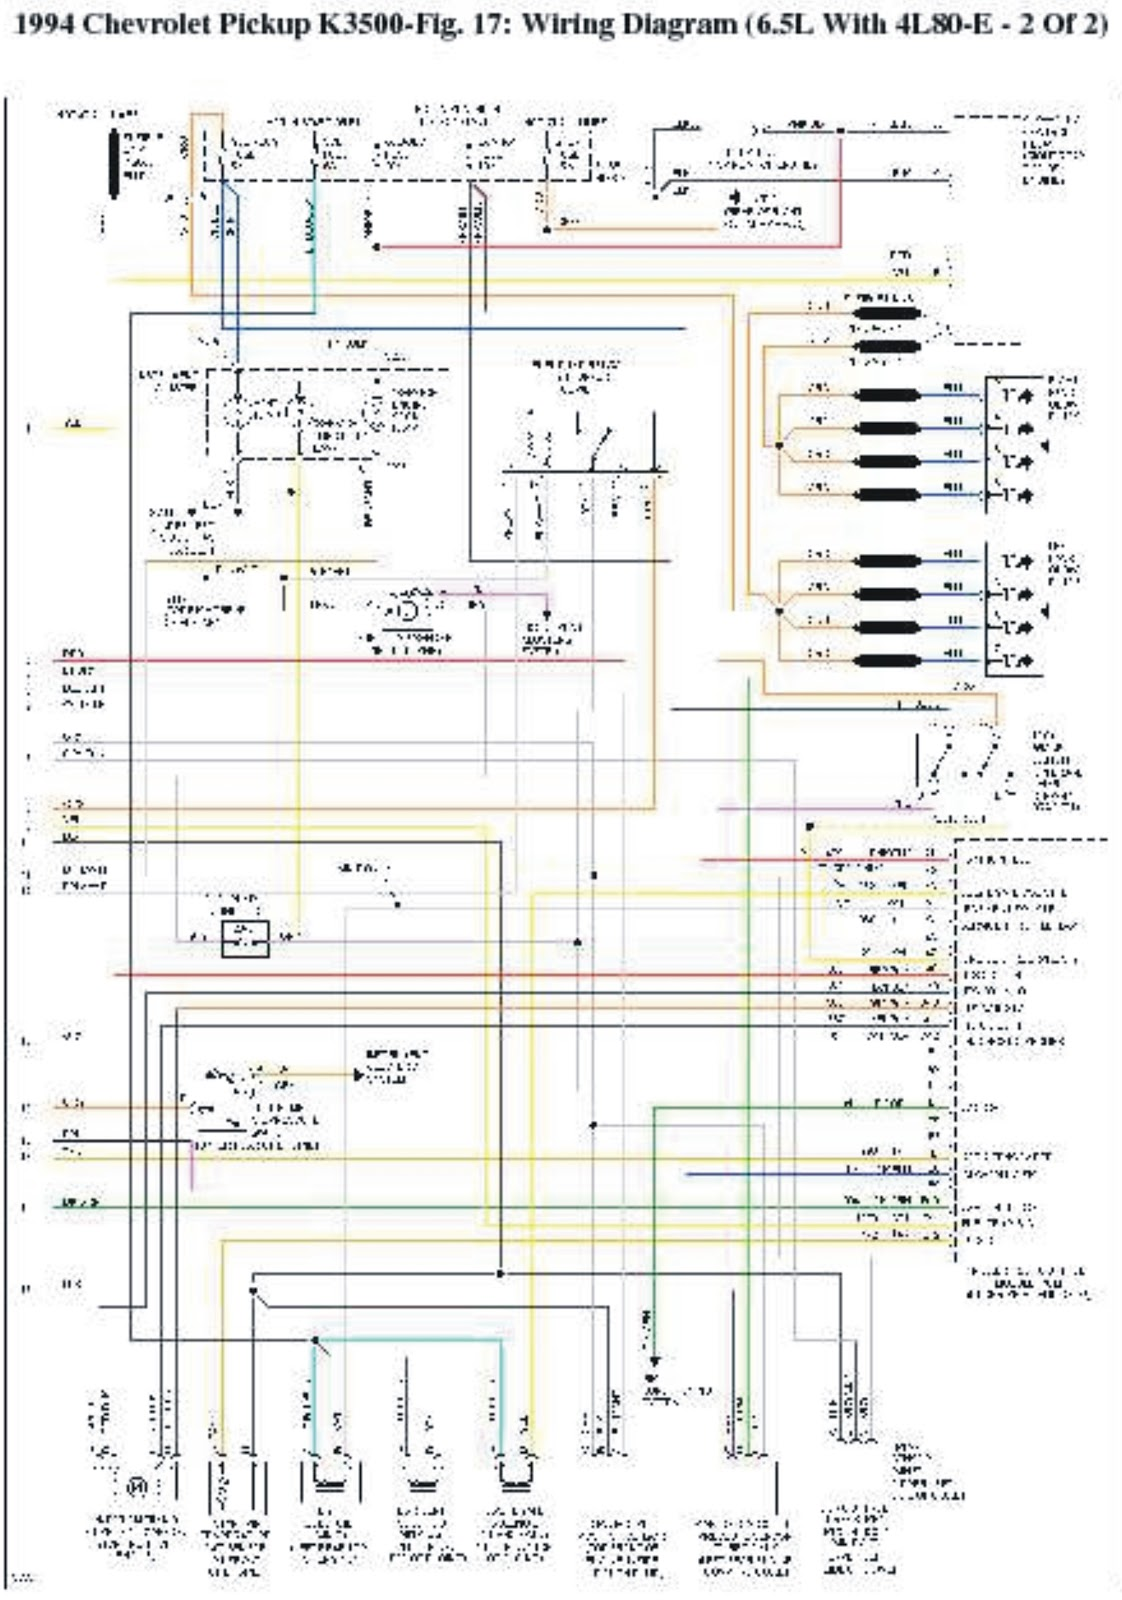 Chevy Silverado Wiring Diagram On Wiring Diagram For A 1994 Chevy